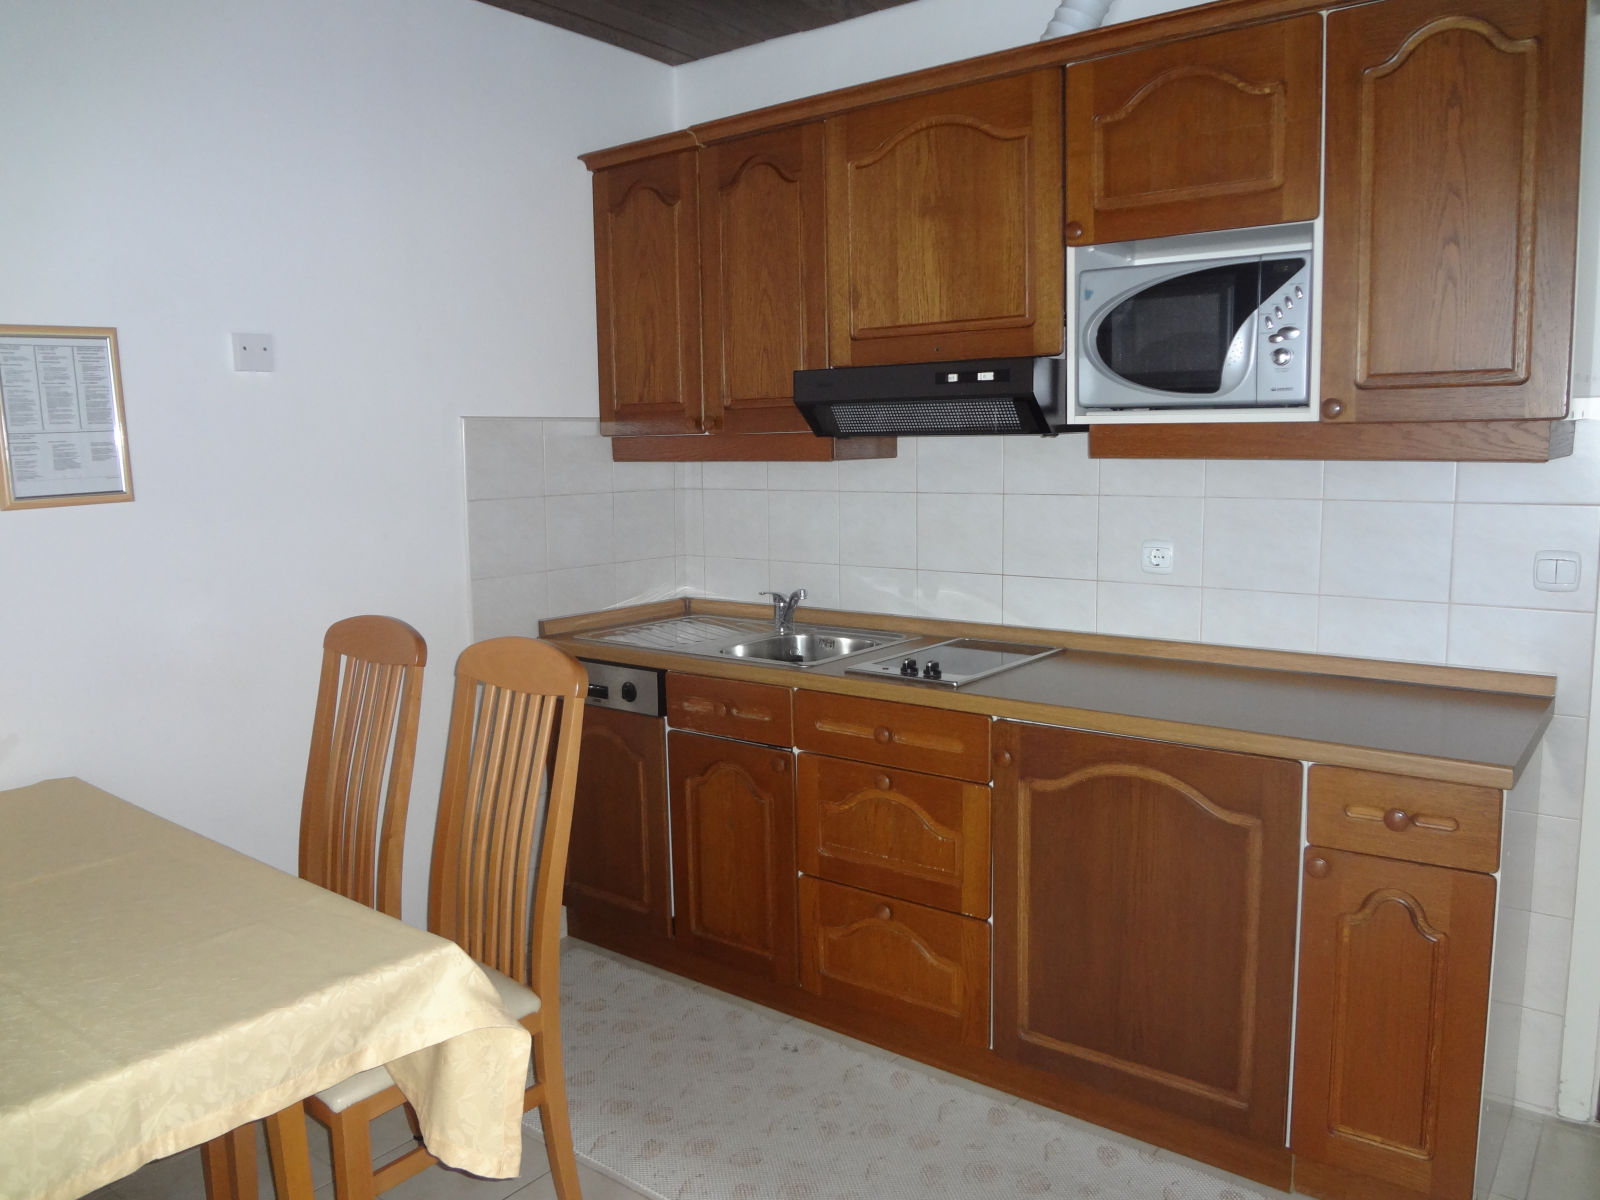 Kitchen of the Fine Stay apartment in Lake Bled, Slovenia